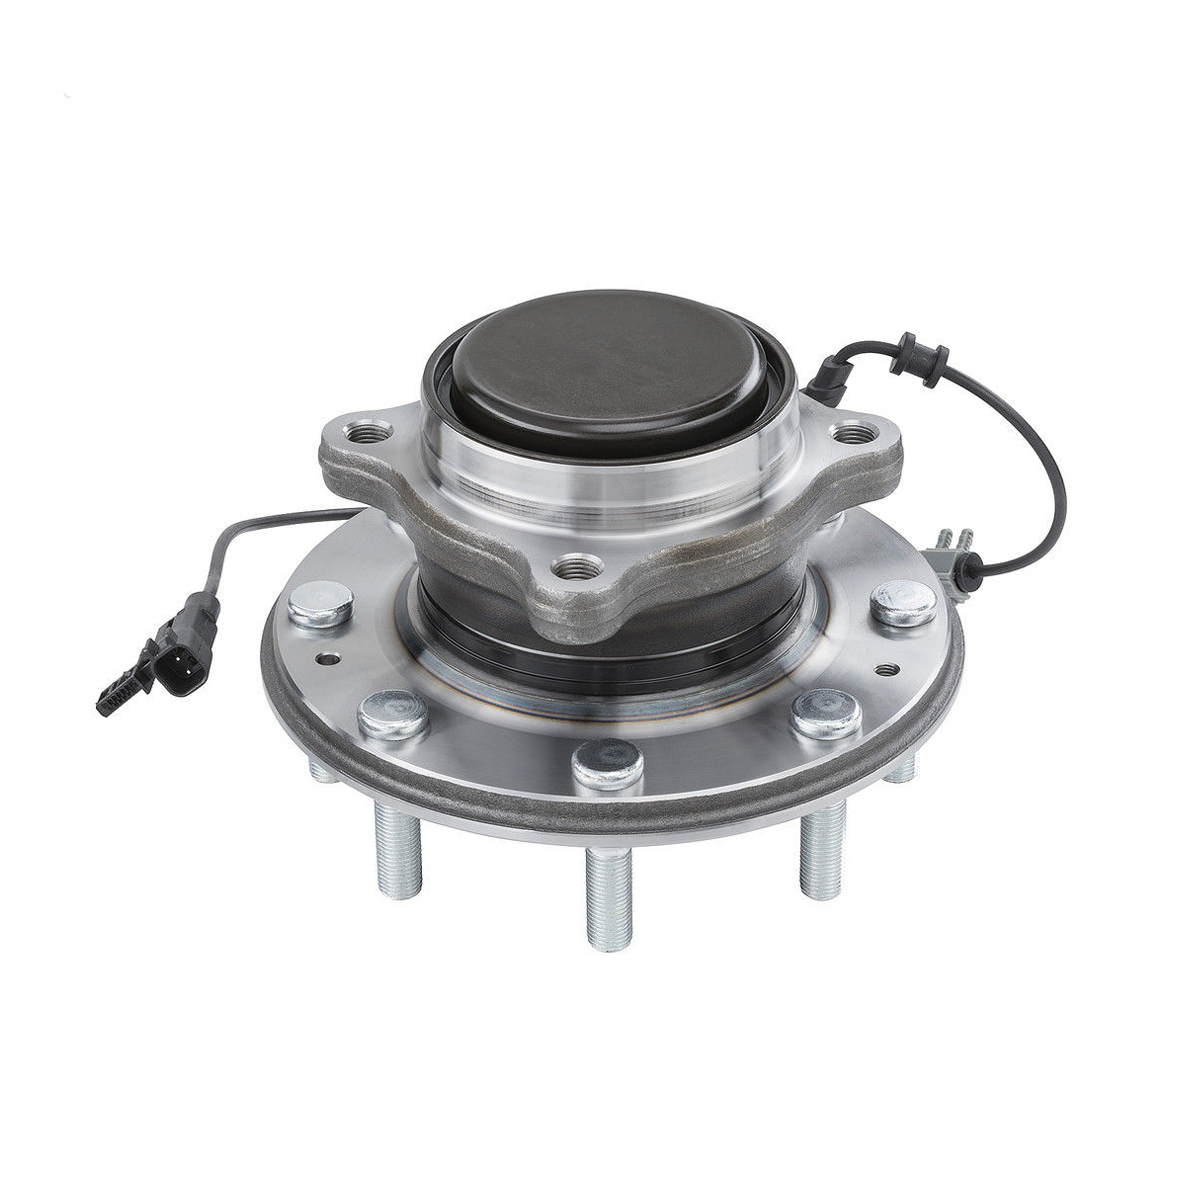 Front Wheel Bearing & Hub Assembly - 2WD and Dual Rear Wheels Only - Driver or Passenger Side